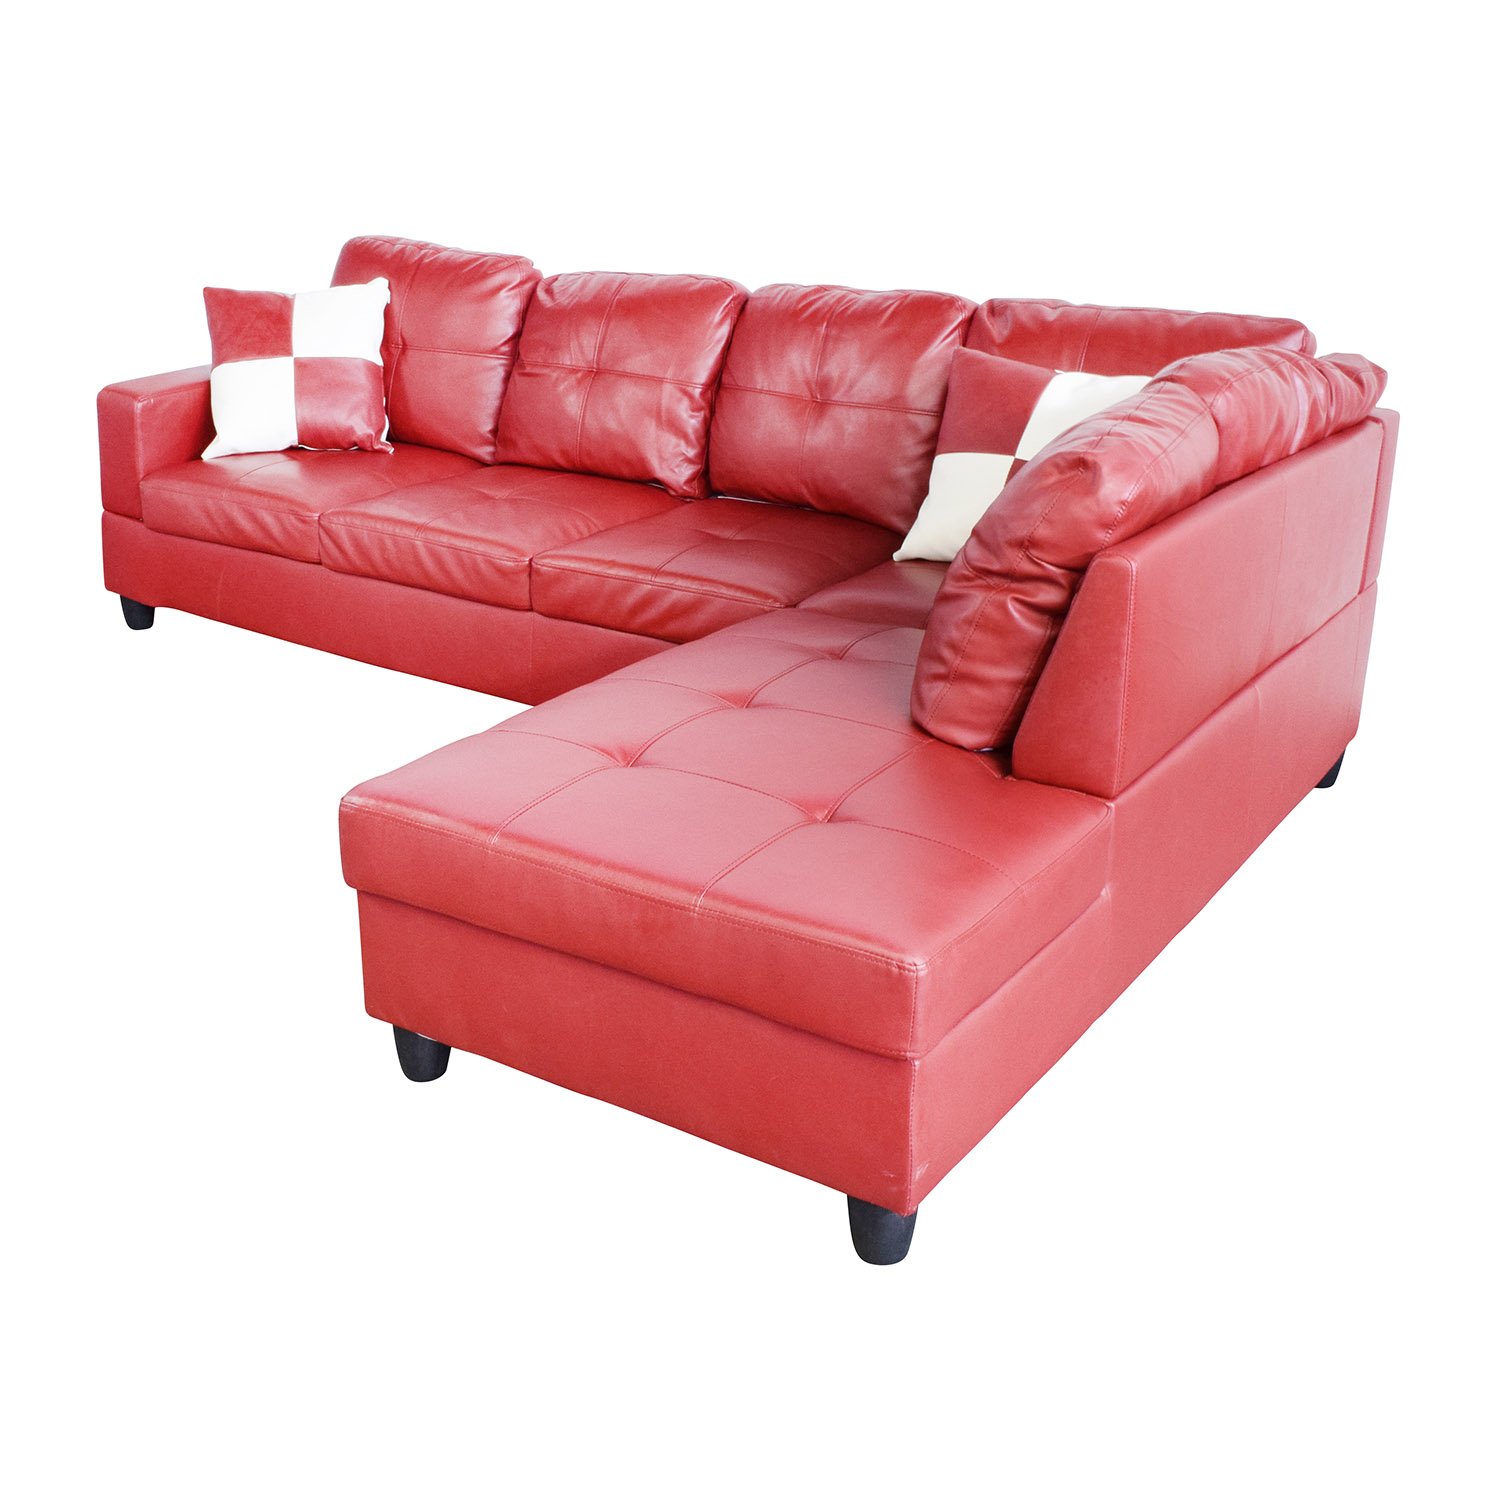 76 Off Beverly Furniture Beverly Furniture Red Faux Leather Sectional Sofas